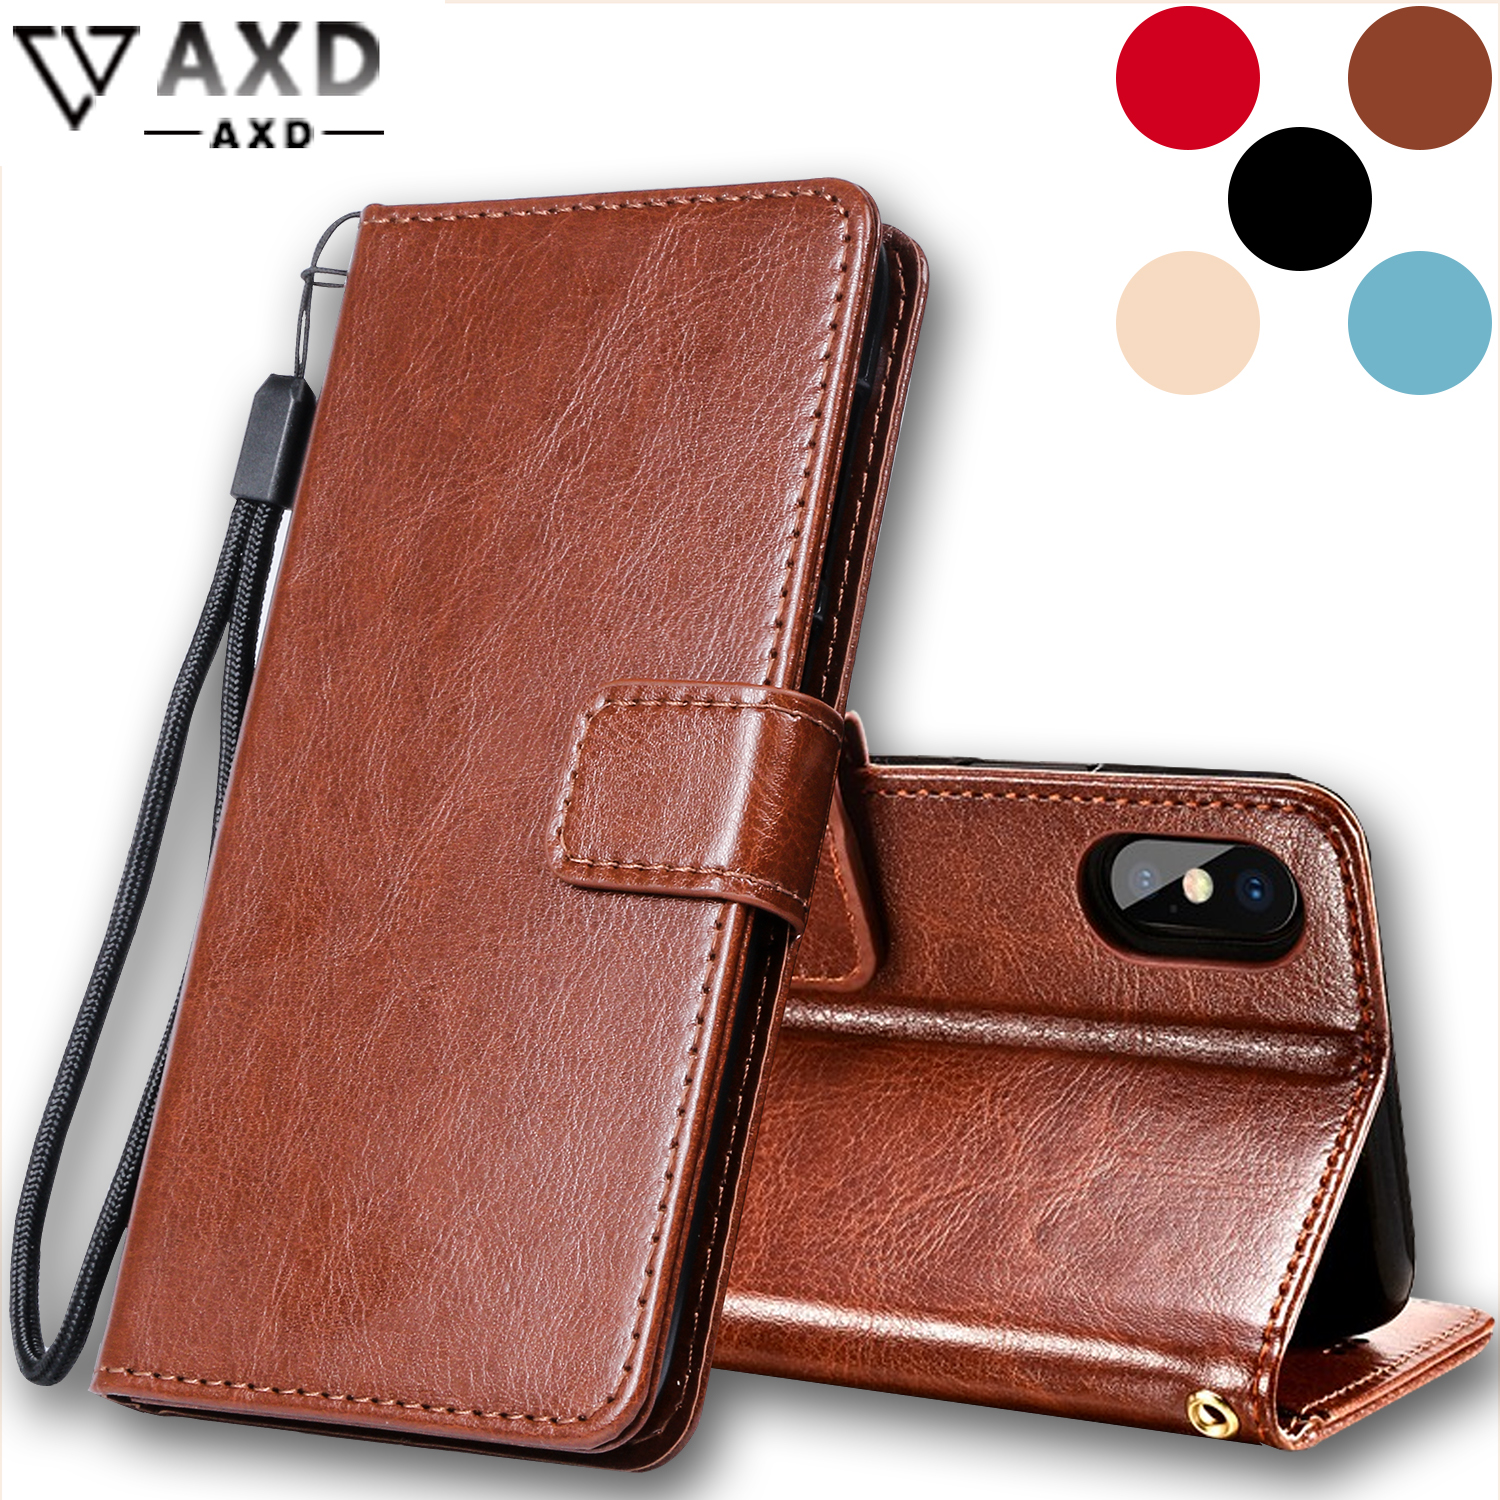 <font><b>Flip</b></font> leather <font><b>case</b></font> for <font><b>Samsung</b></font> <font><b>Galaxy</b></font> A3 2015 A300 2016 A310 2017 A320 F wallet style coque cover for <font><b>A5</b></font> A500 A510 <font><b>A520</b></font> 2018 A530 image